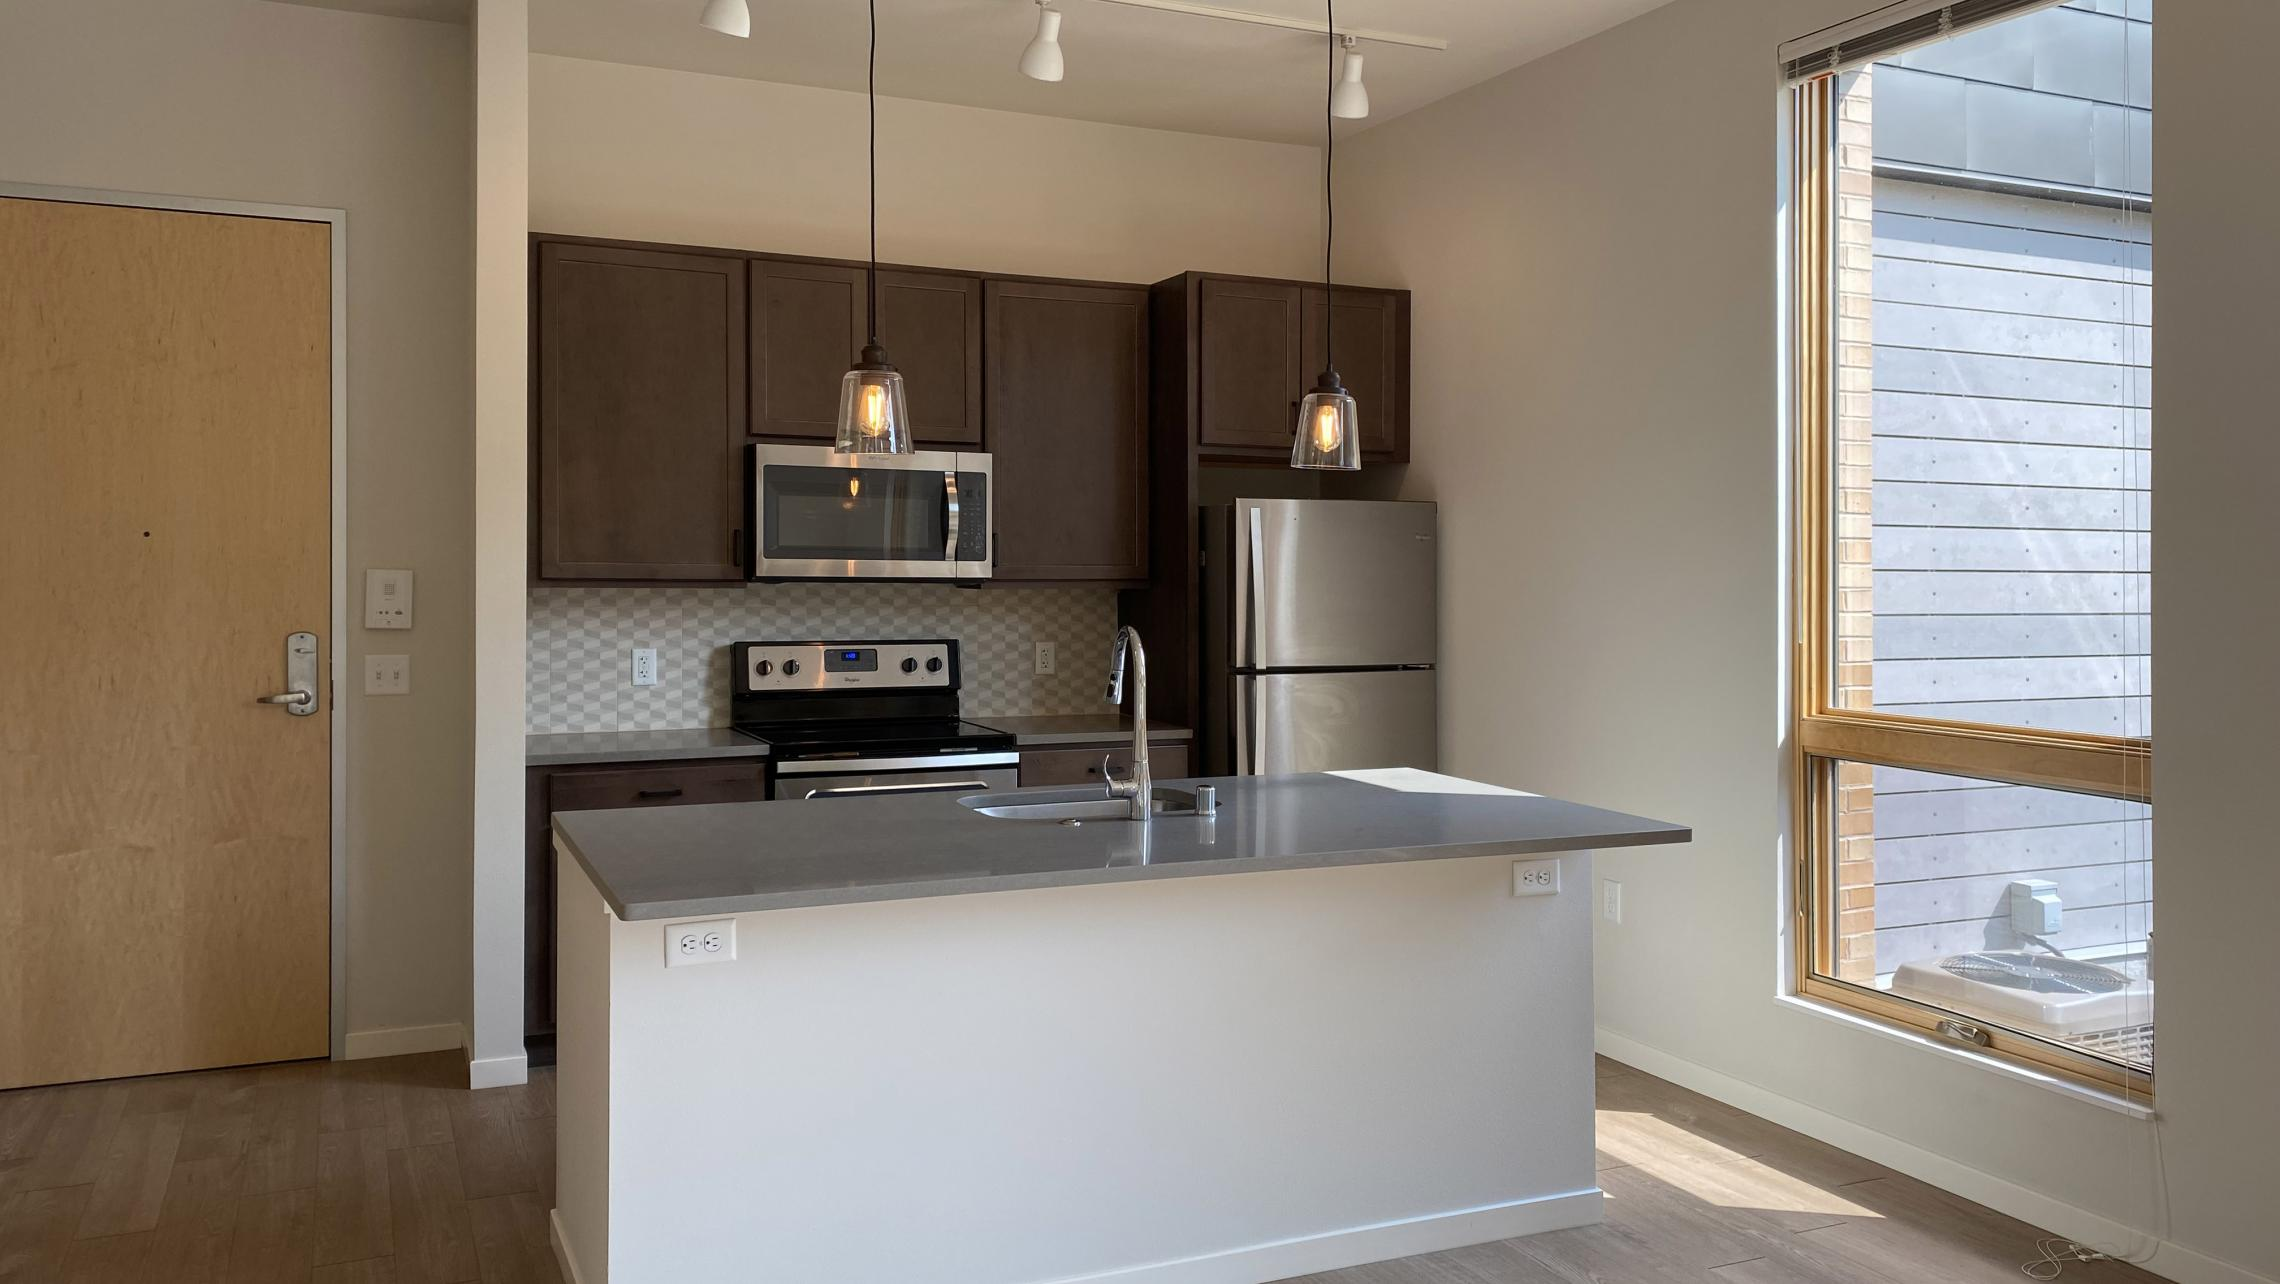 Quarter-Row-The-Yards-Apartment-102-Croner-Balcony-Downtown-Madison-Bike-Cat-Dog-Lifestule-Modern-Upscale-Design-Living-Kitchen-Island